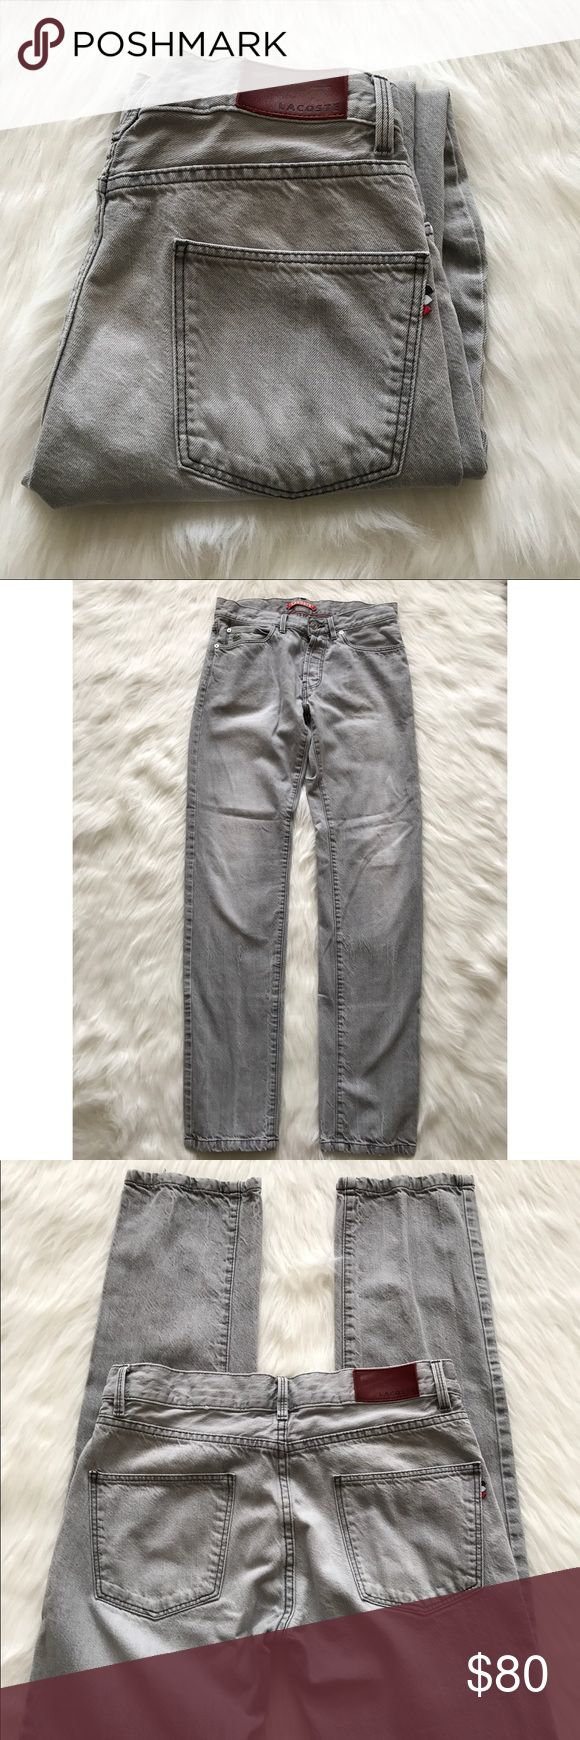 "Lacoste Live Slim Fit Gray Raw Jeans Great Pre-Owned Condition. Waist - 30"" Inseam - 32"" Lacoste Jeans Slim Straight"